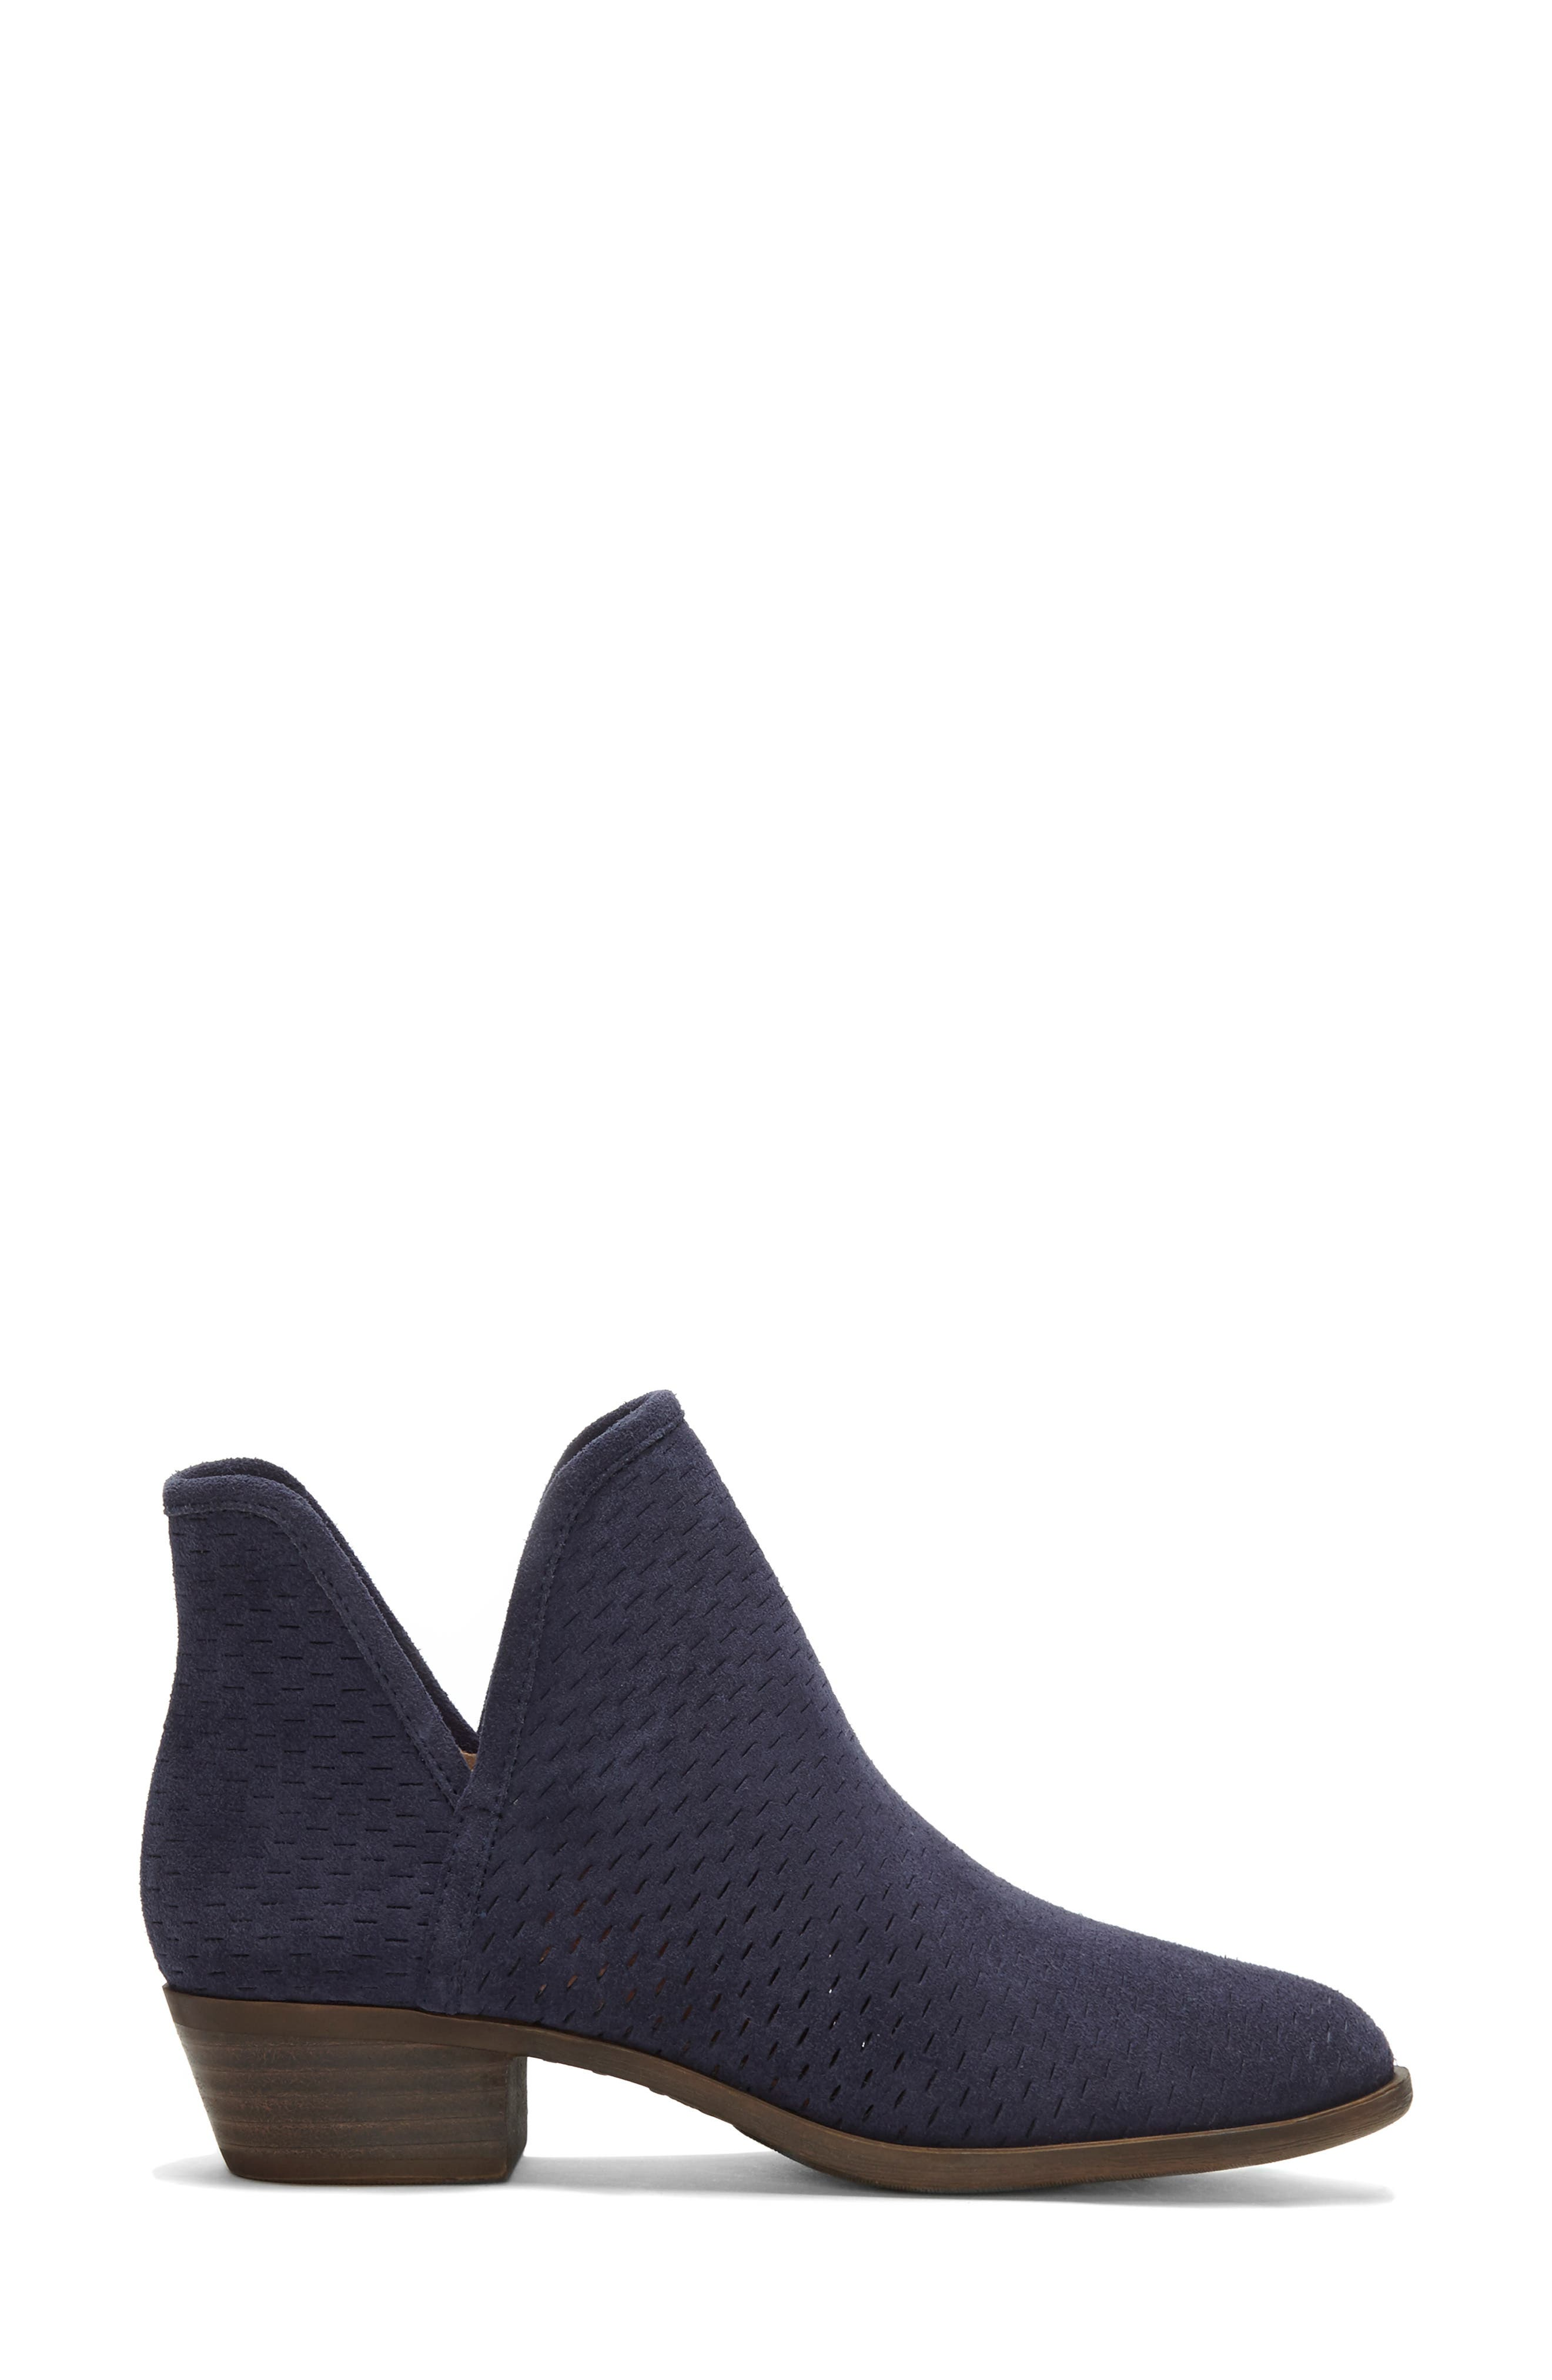 Baley Bootie,                             Alternate thumbnail 2, color,                             MOROCCAN BLUE SUEDE